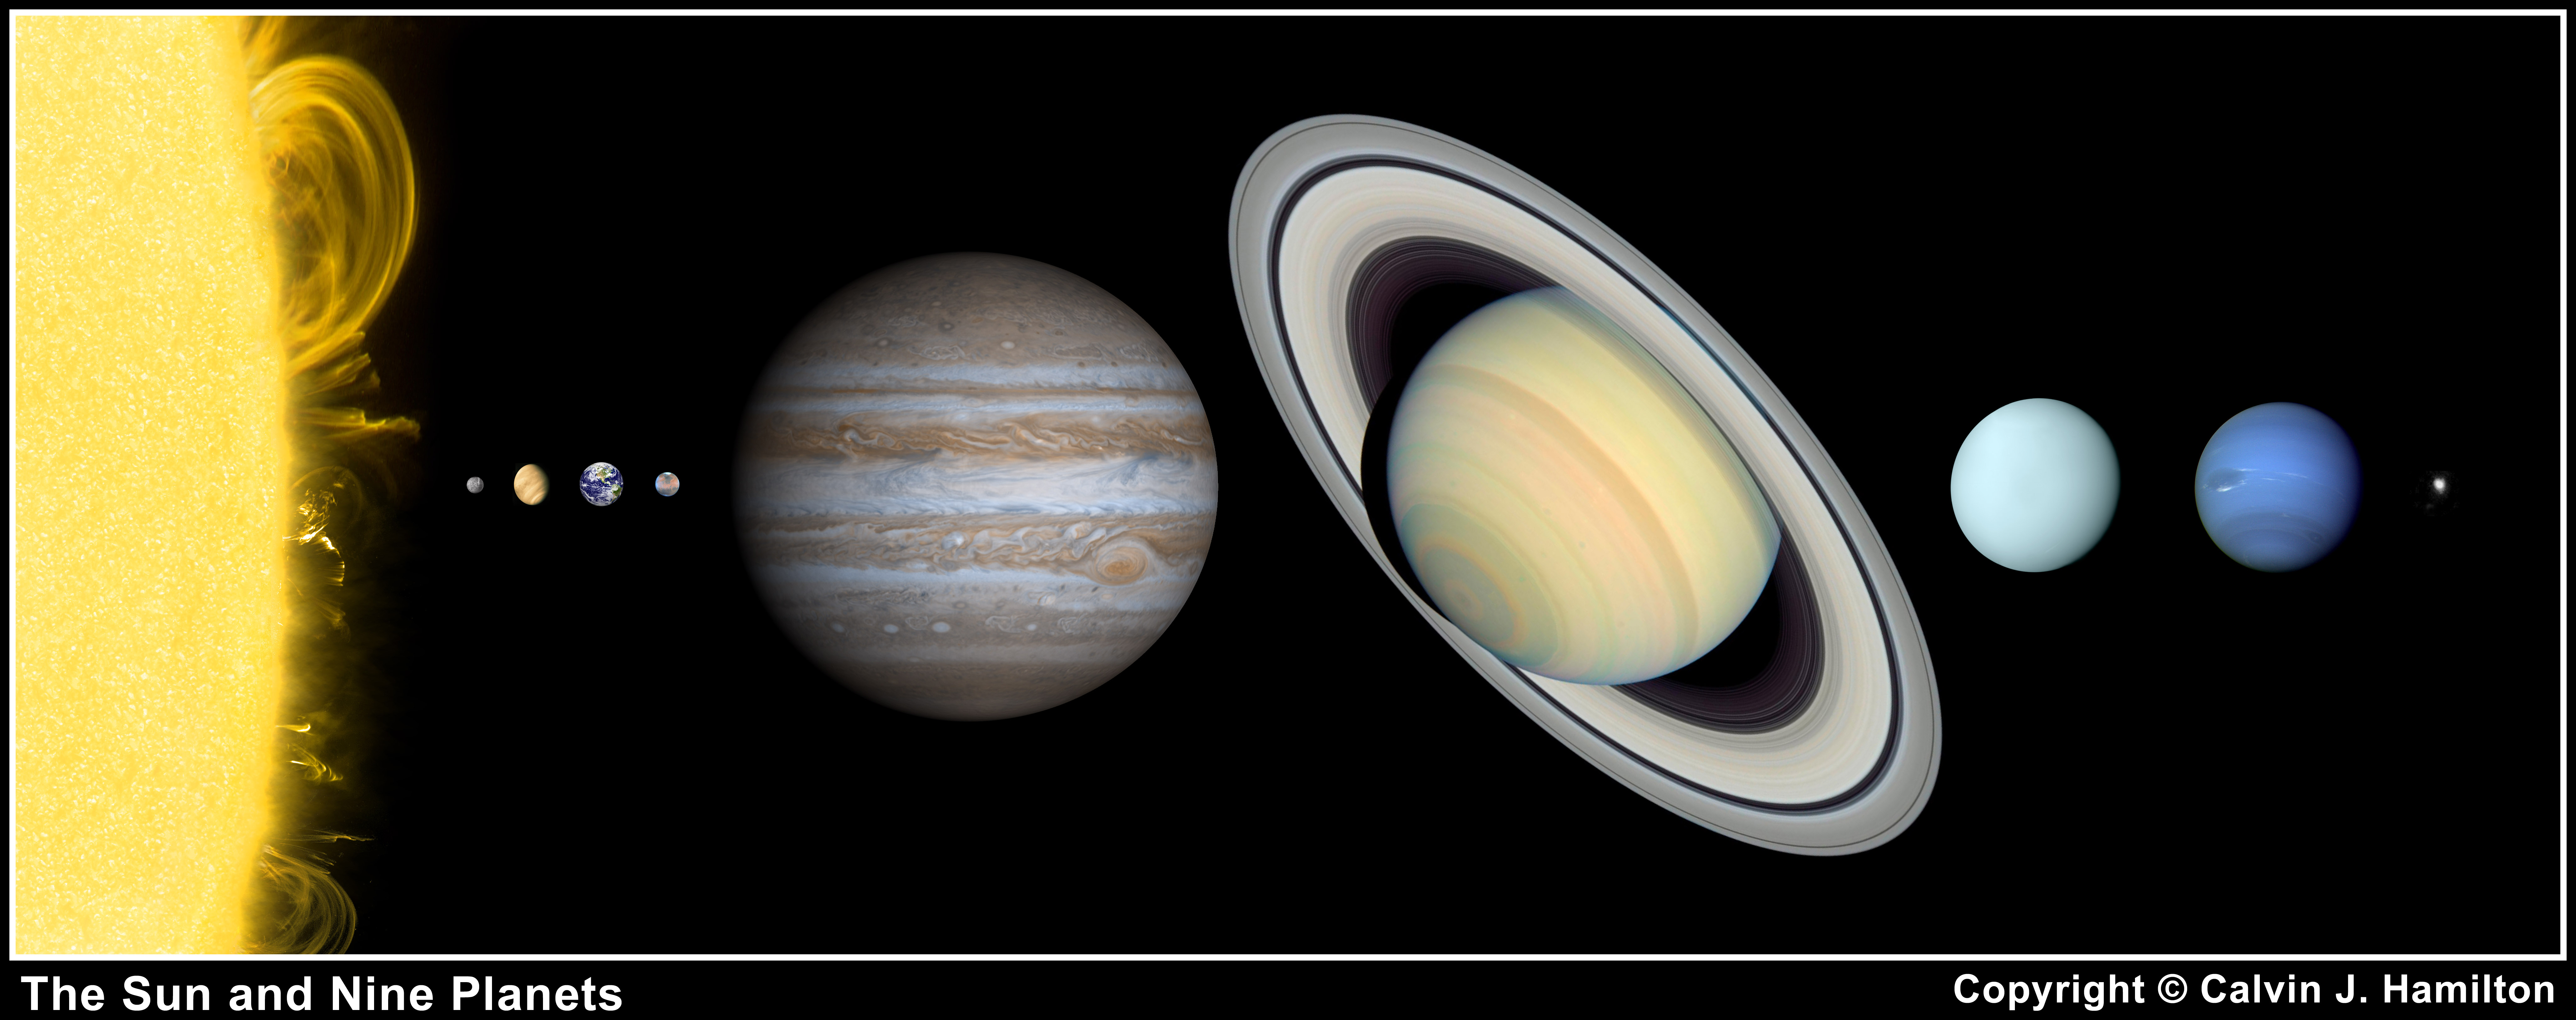 solar system planets in order of distance from sun - photo #30